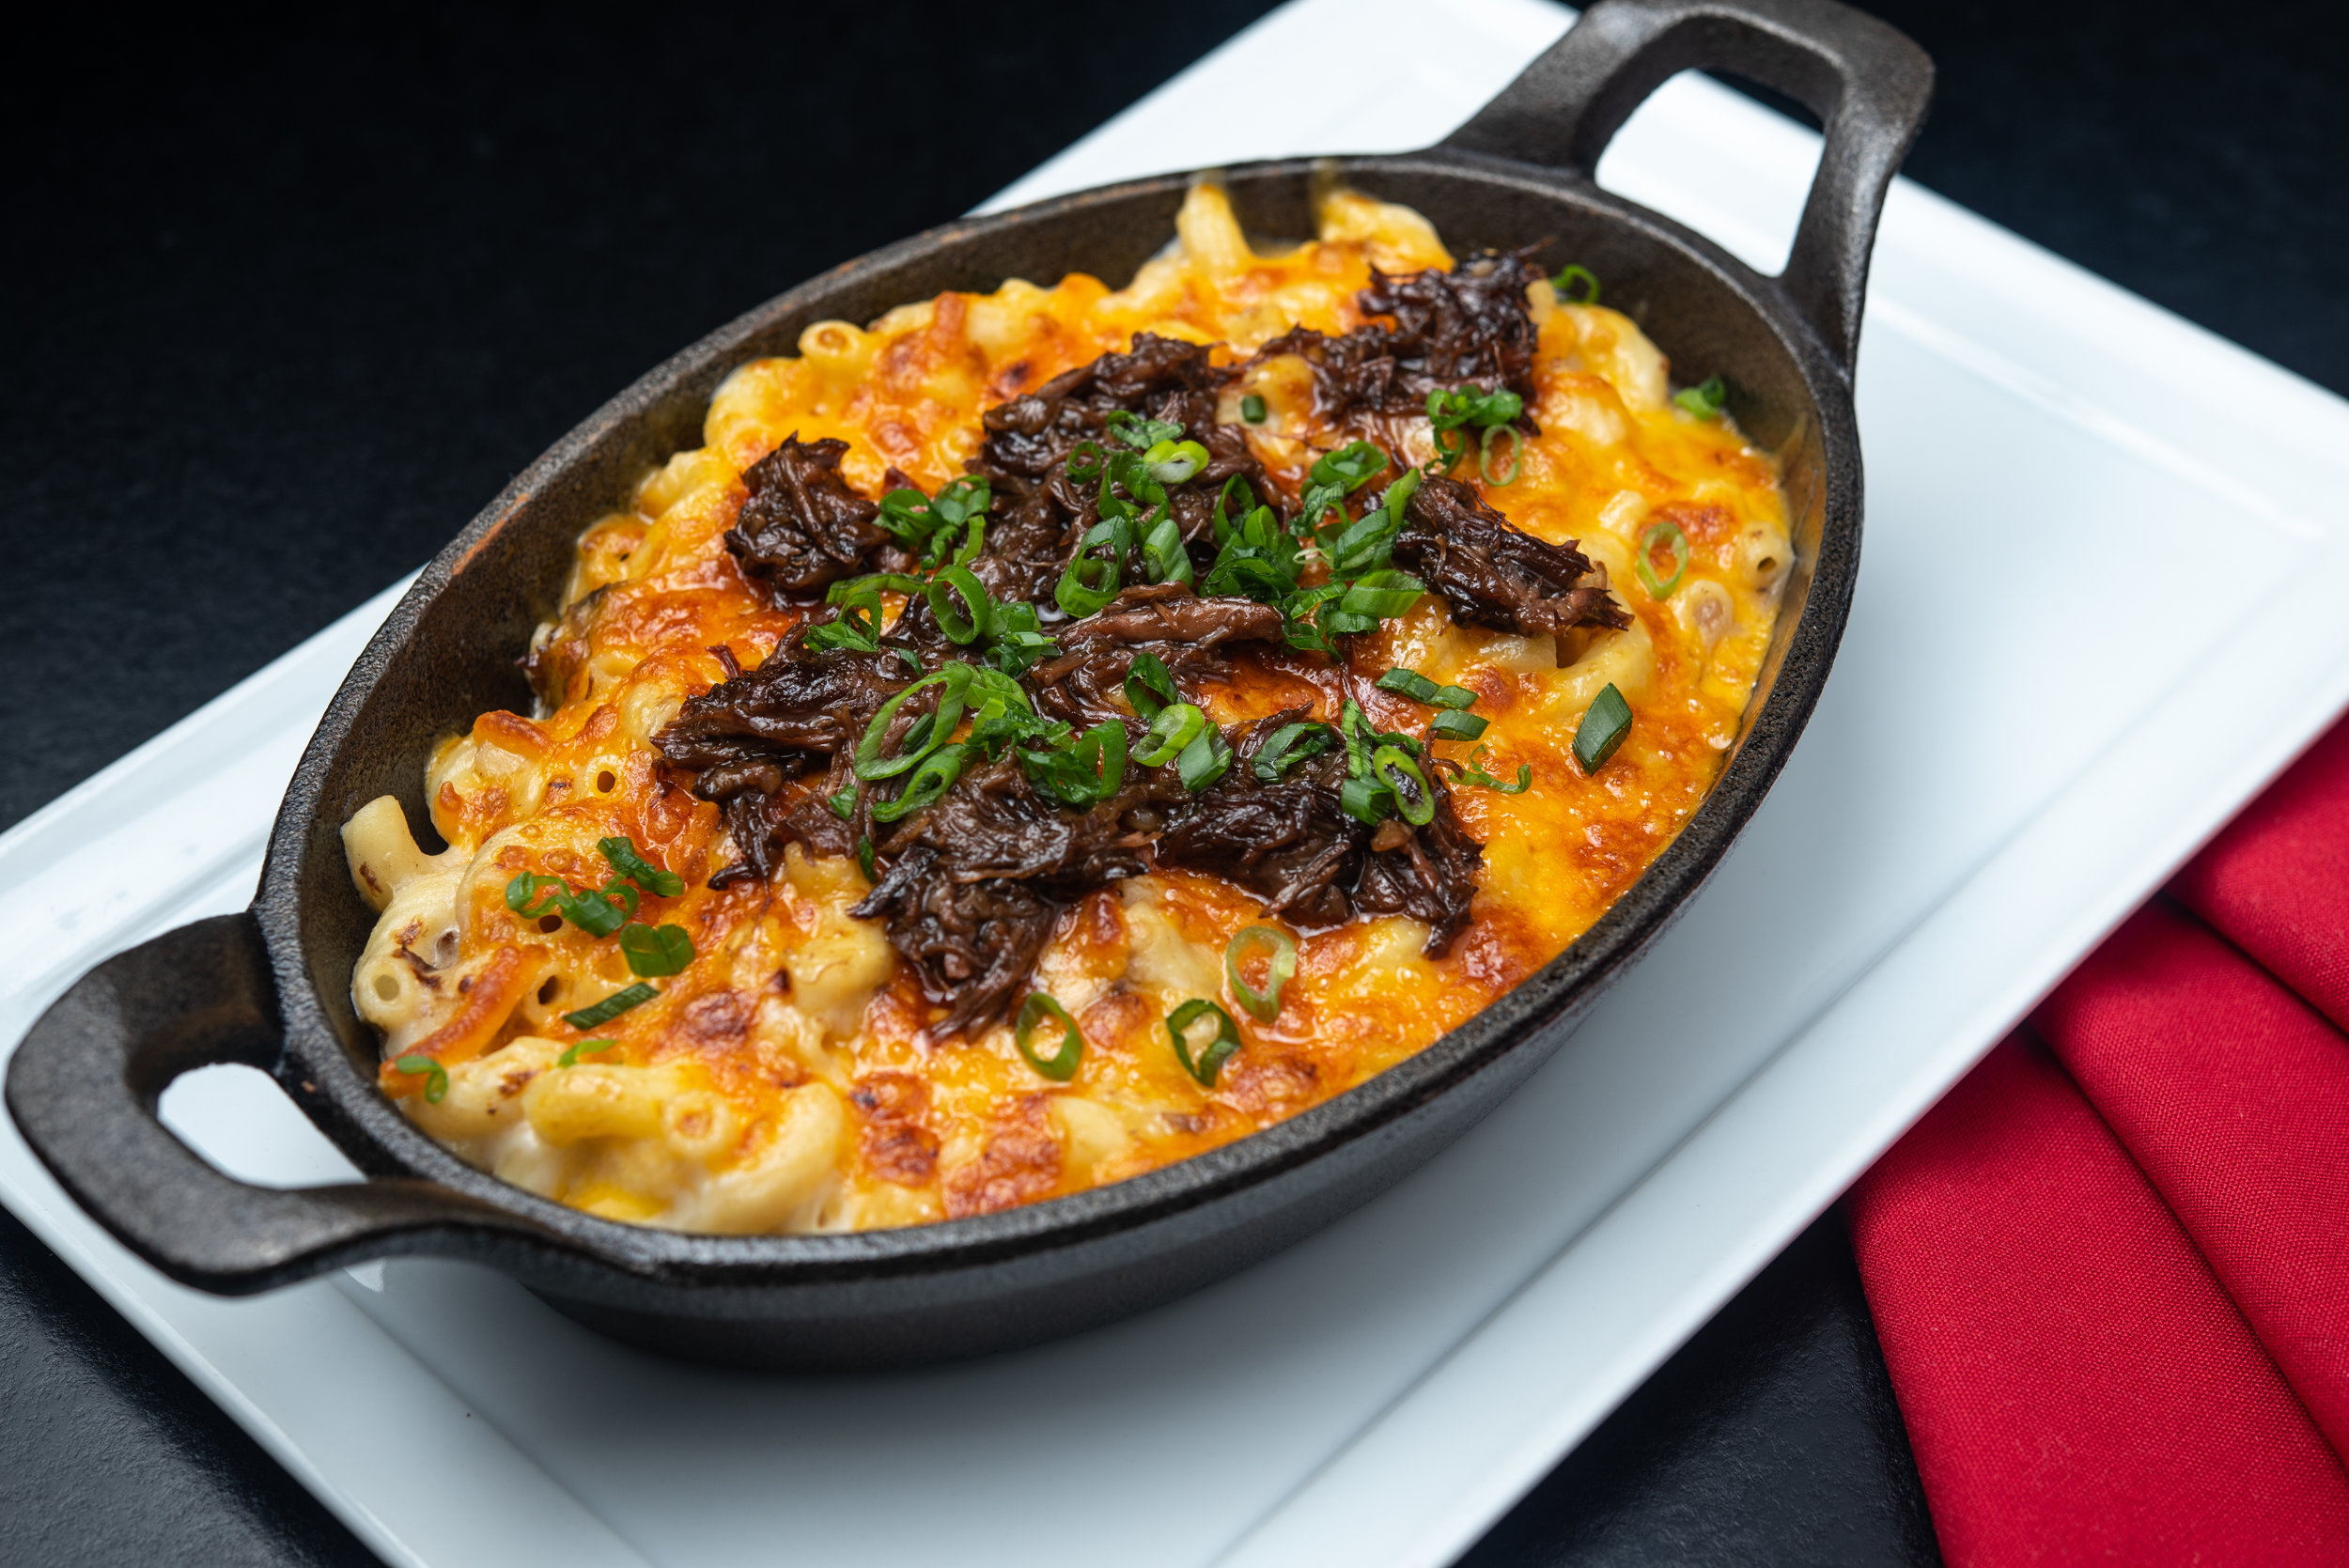 Skillet Mac N' Cheese with Shortrib4.jpg